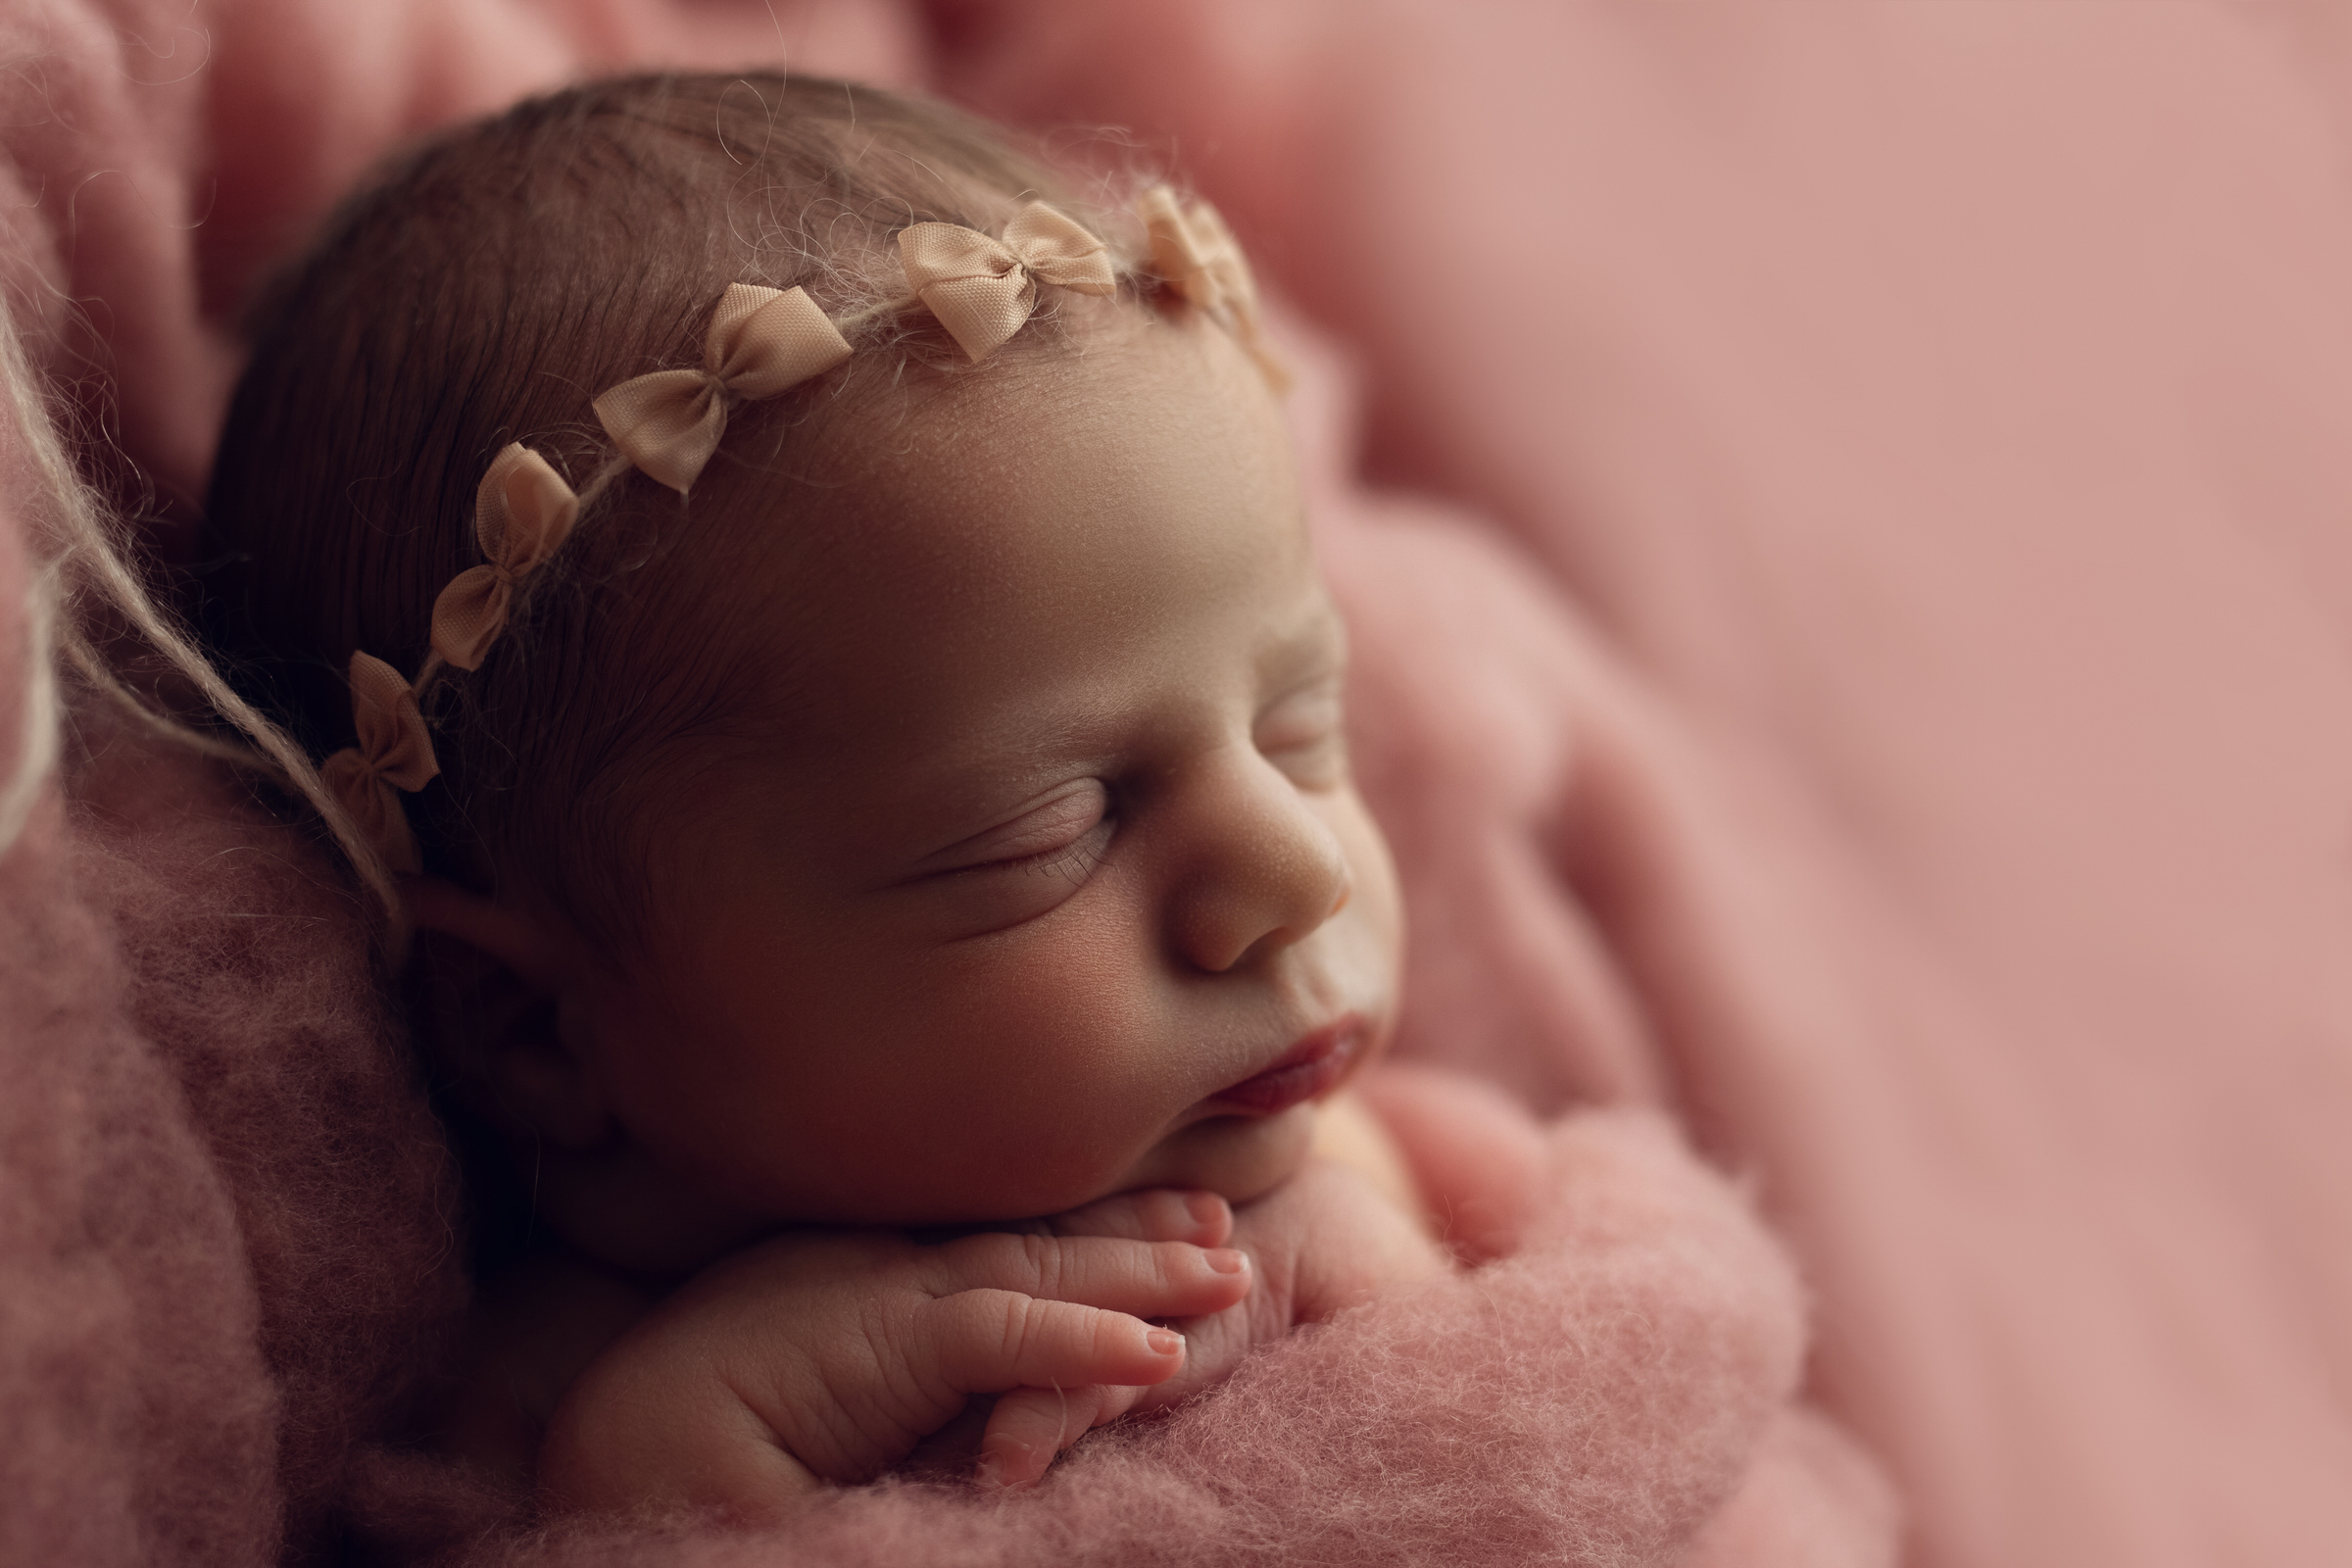 side view of baby's profile on pink backdrop